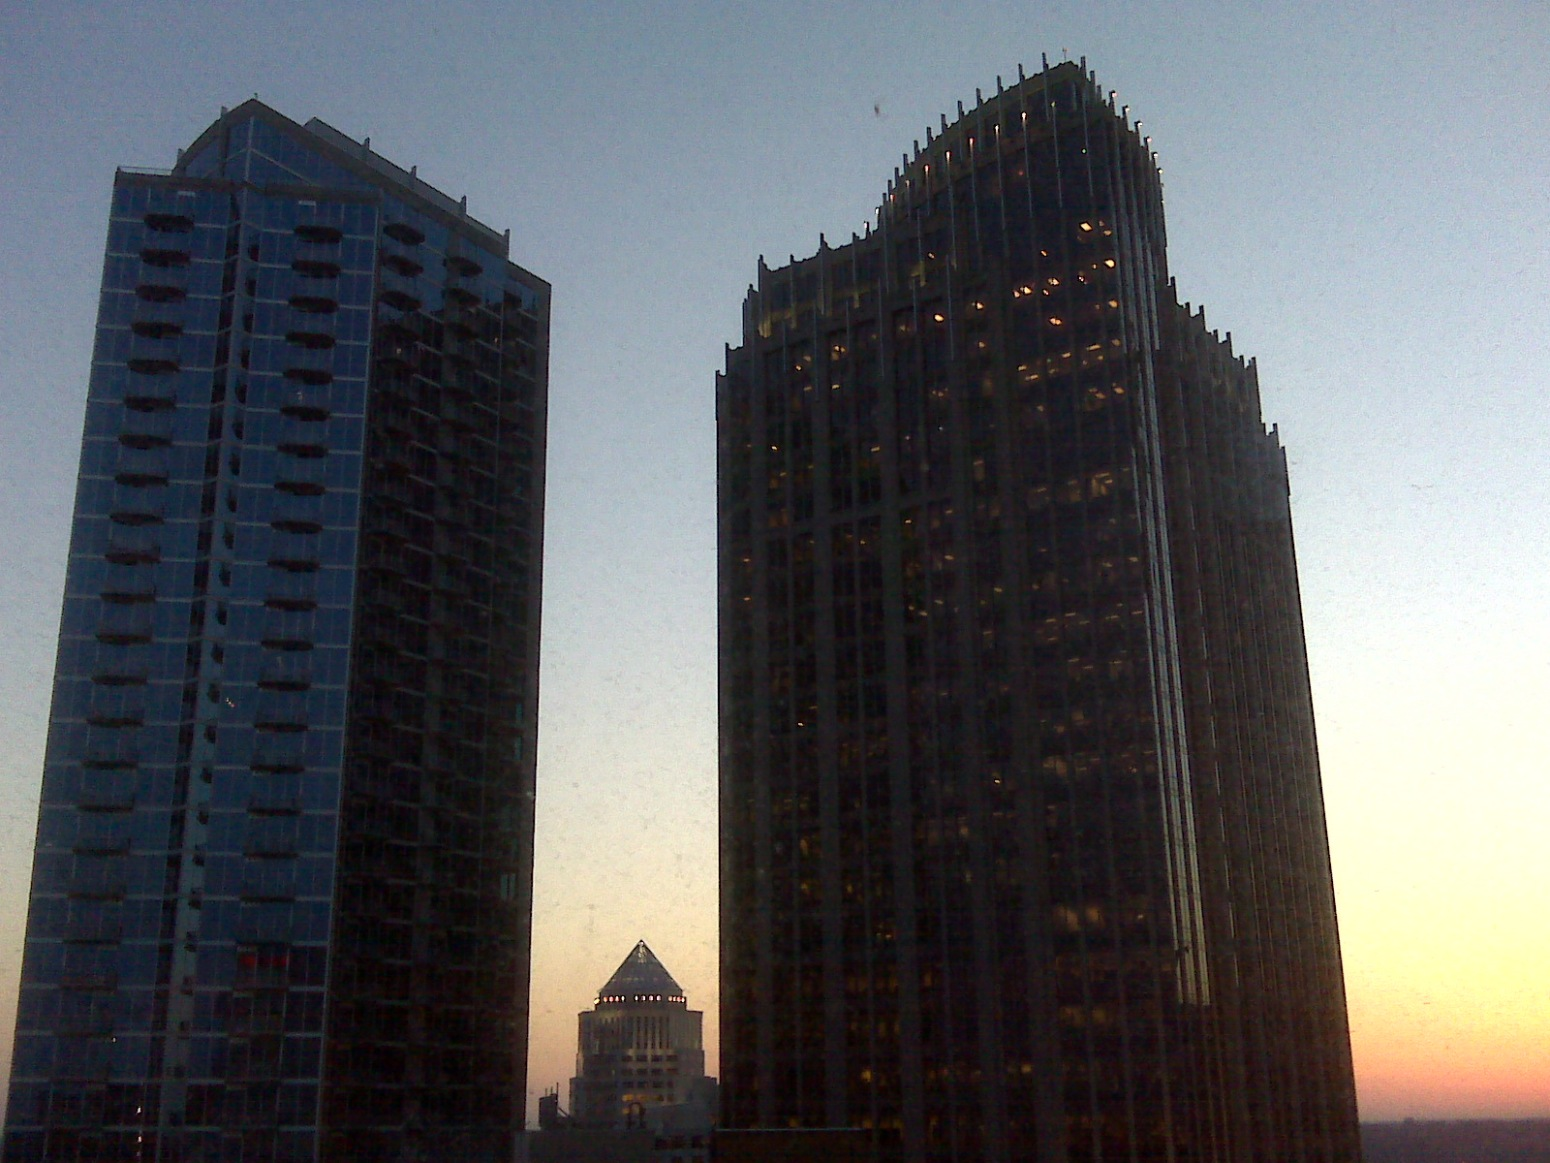 sunrise-in-charlotte.jpg